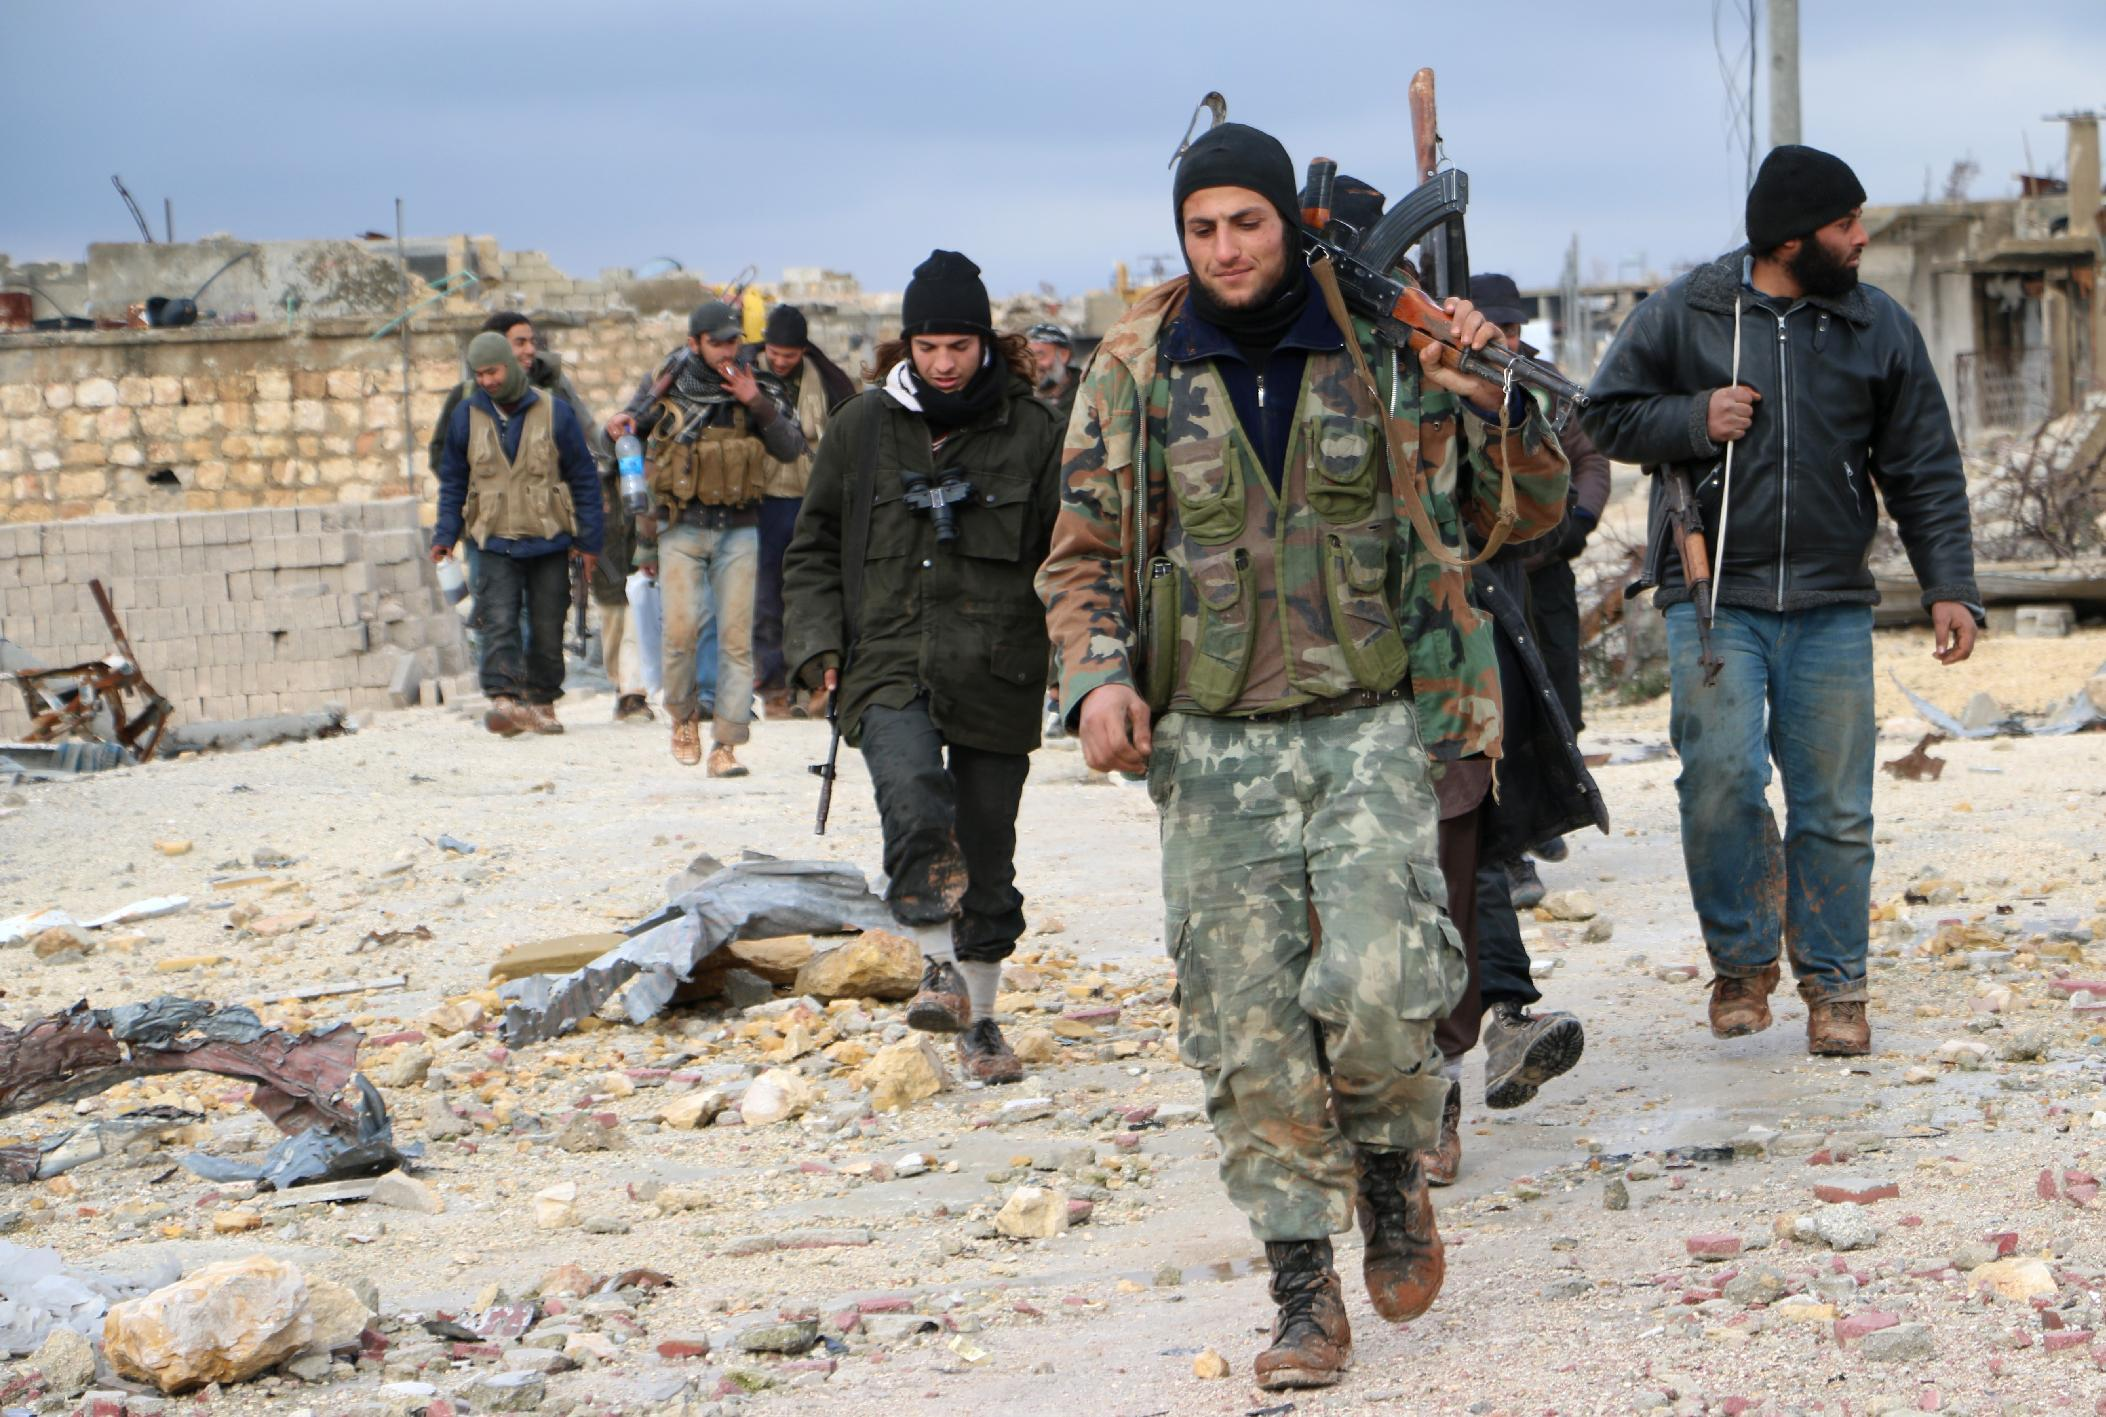 Opposition fighters walk in the al-Breij area of the northern Syrian city of Aleppo after they reportedly re-took control of the area from pro-government forces in January (AFP Photo/Fadi al-Halabi)